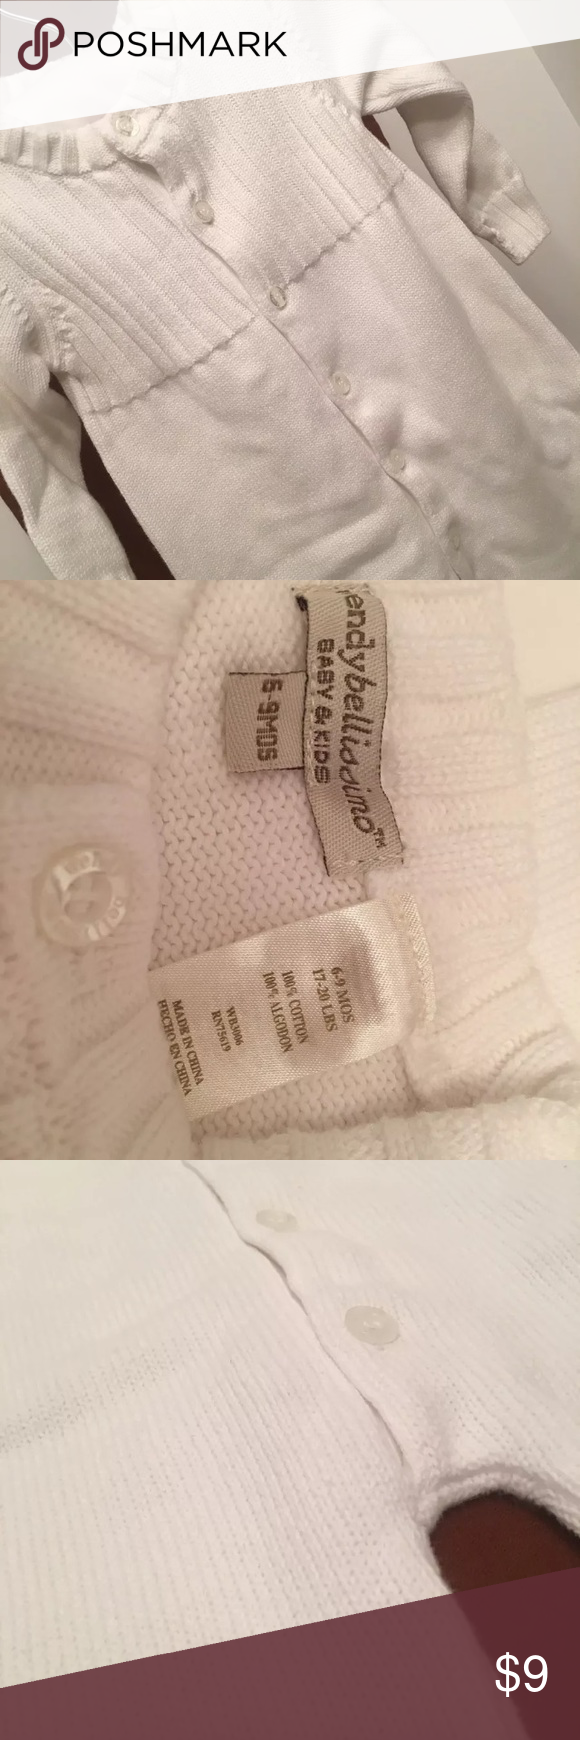 wendy bellissimo White Cable Knit Coveralls 6-9 M wendy bellissimo Gender Neutral White White Cable Knit Coveralls  Baby Boy 6-9 M Wendy Bellissimo One Pieces